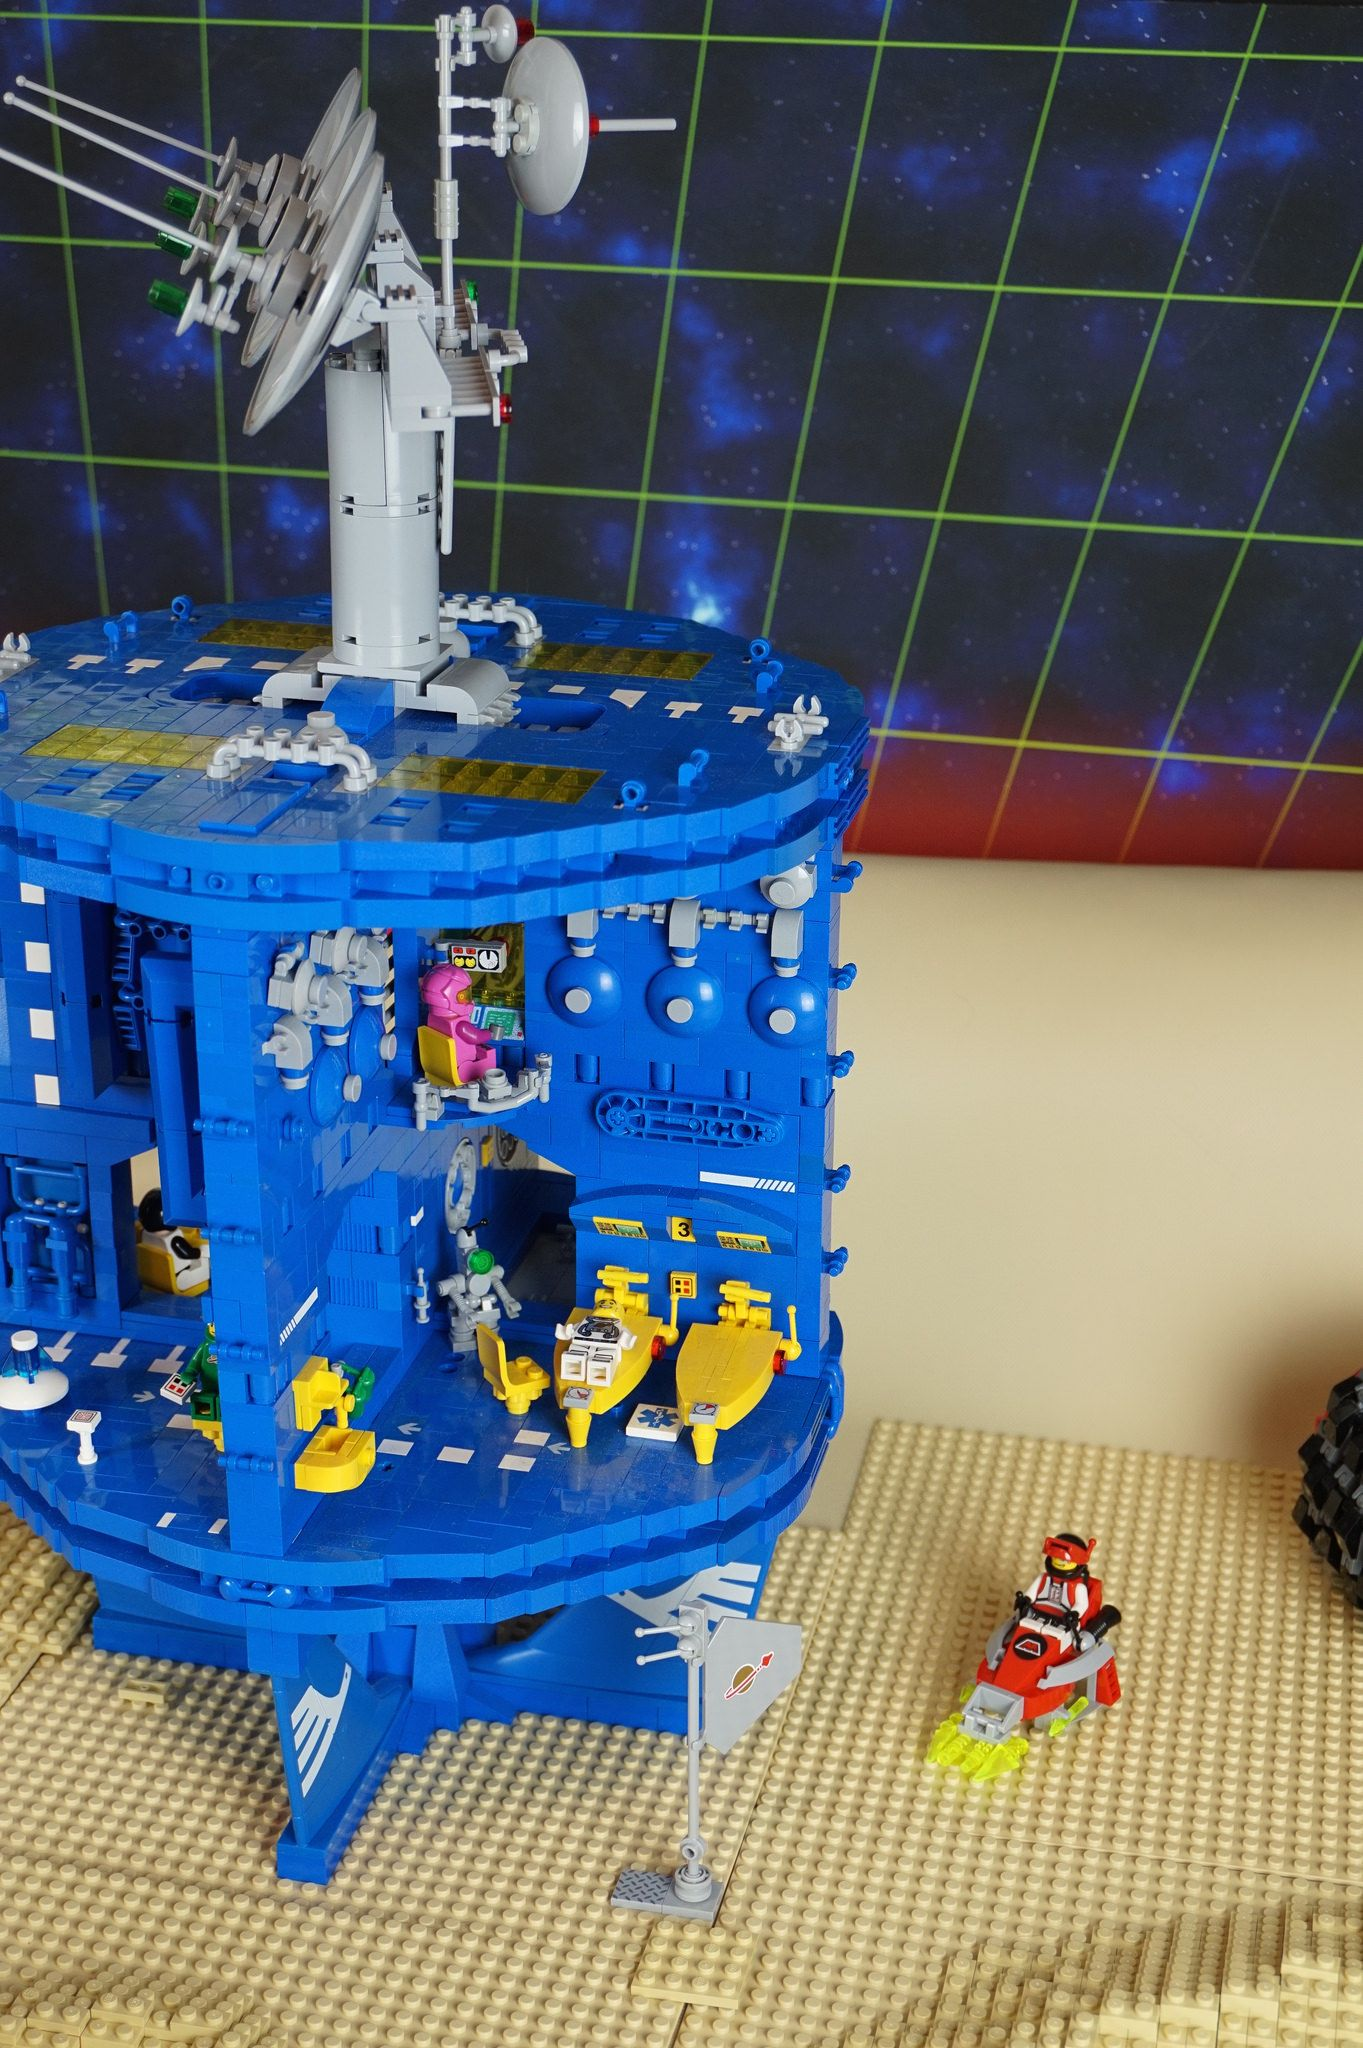 Https Flic Kr P Tuwwl6 Classic Space Base Lego Space Cool Lego Creations Cool Lego